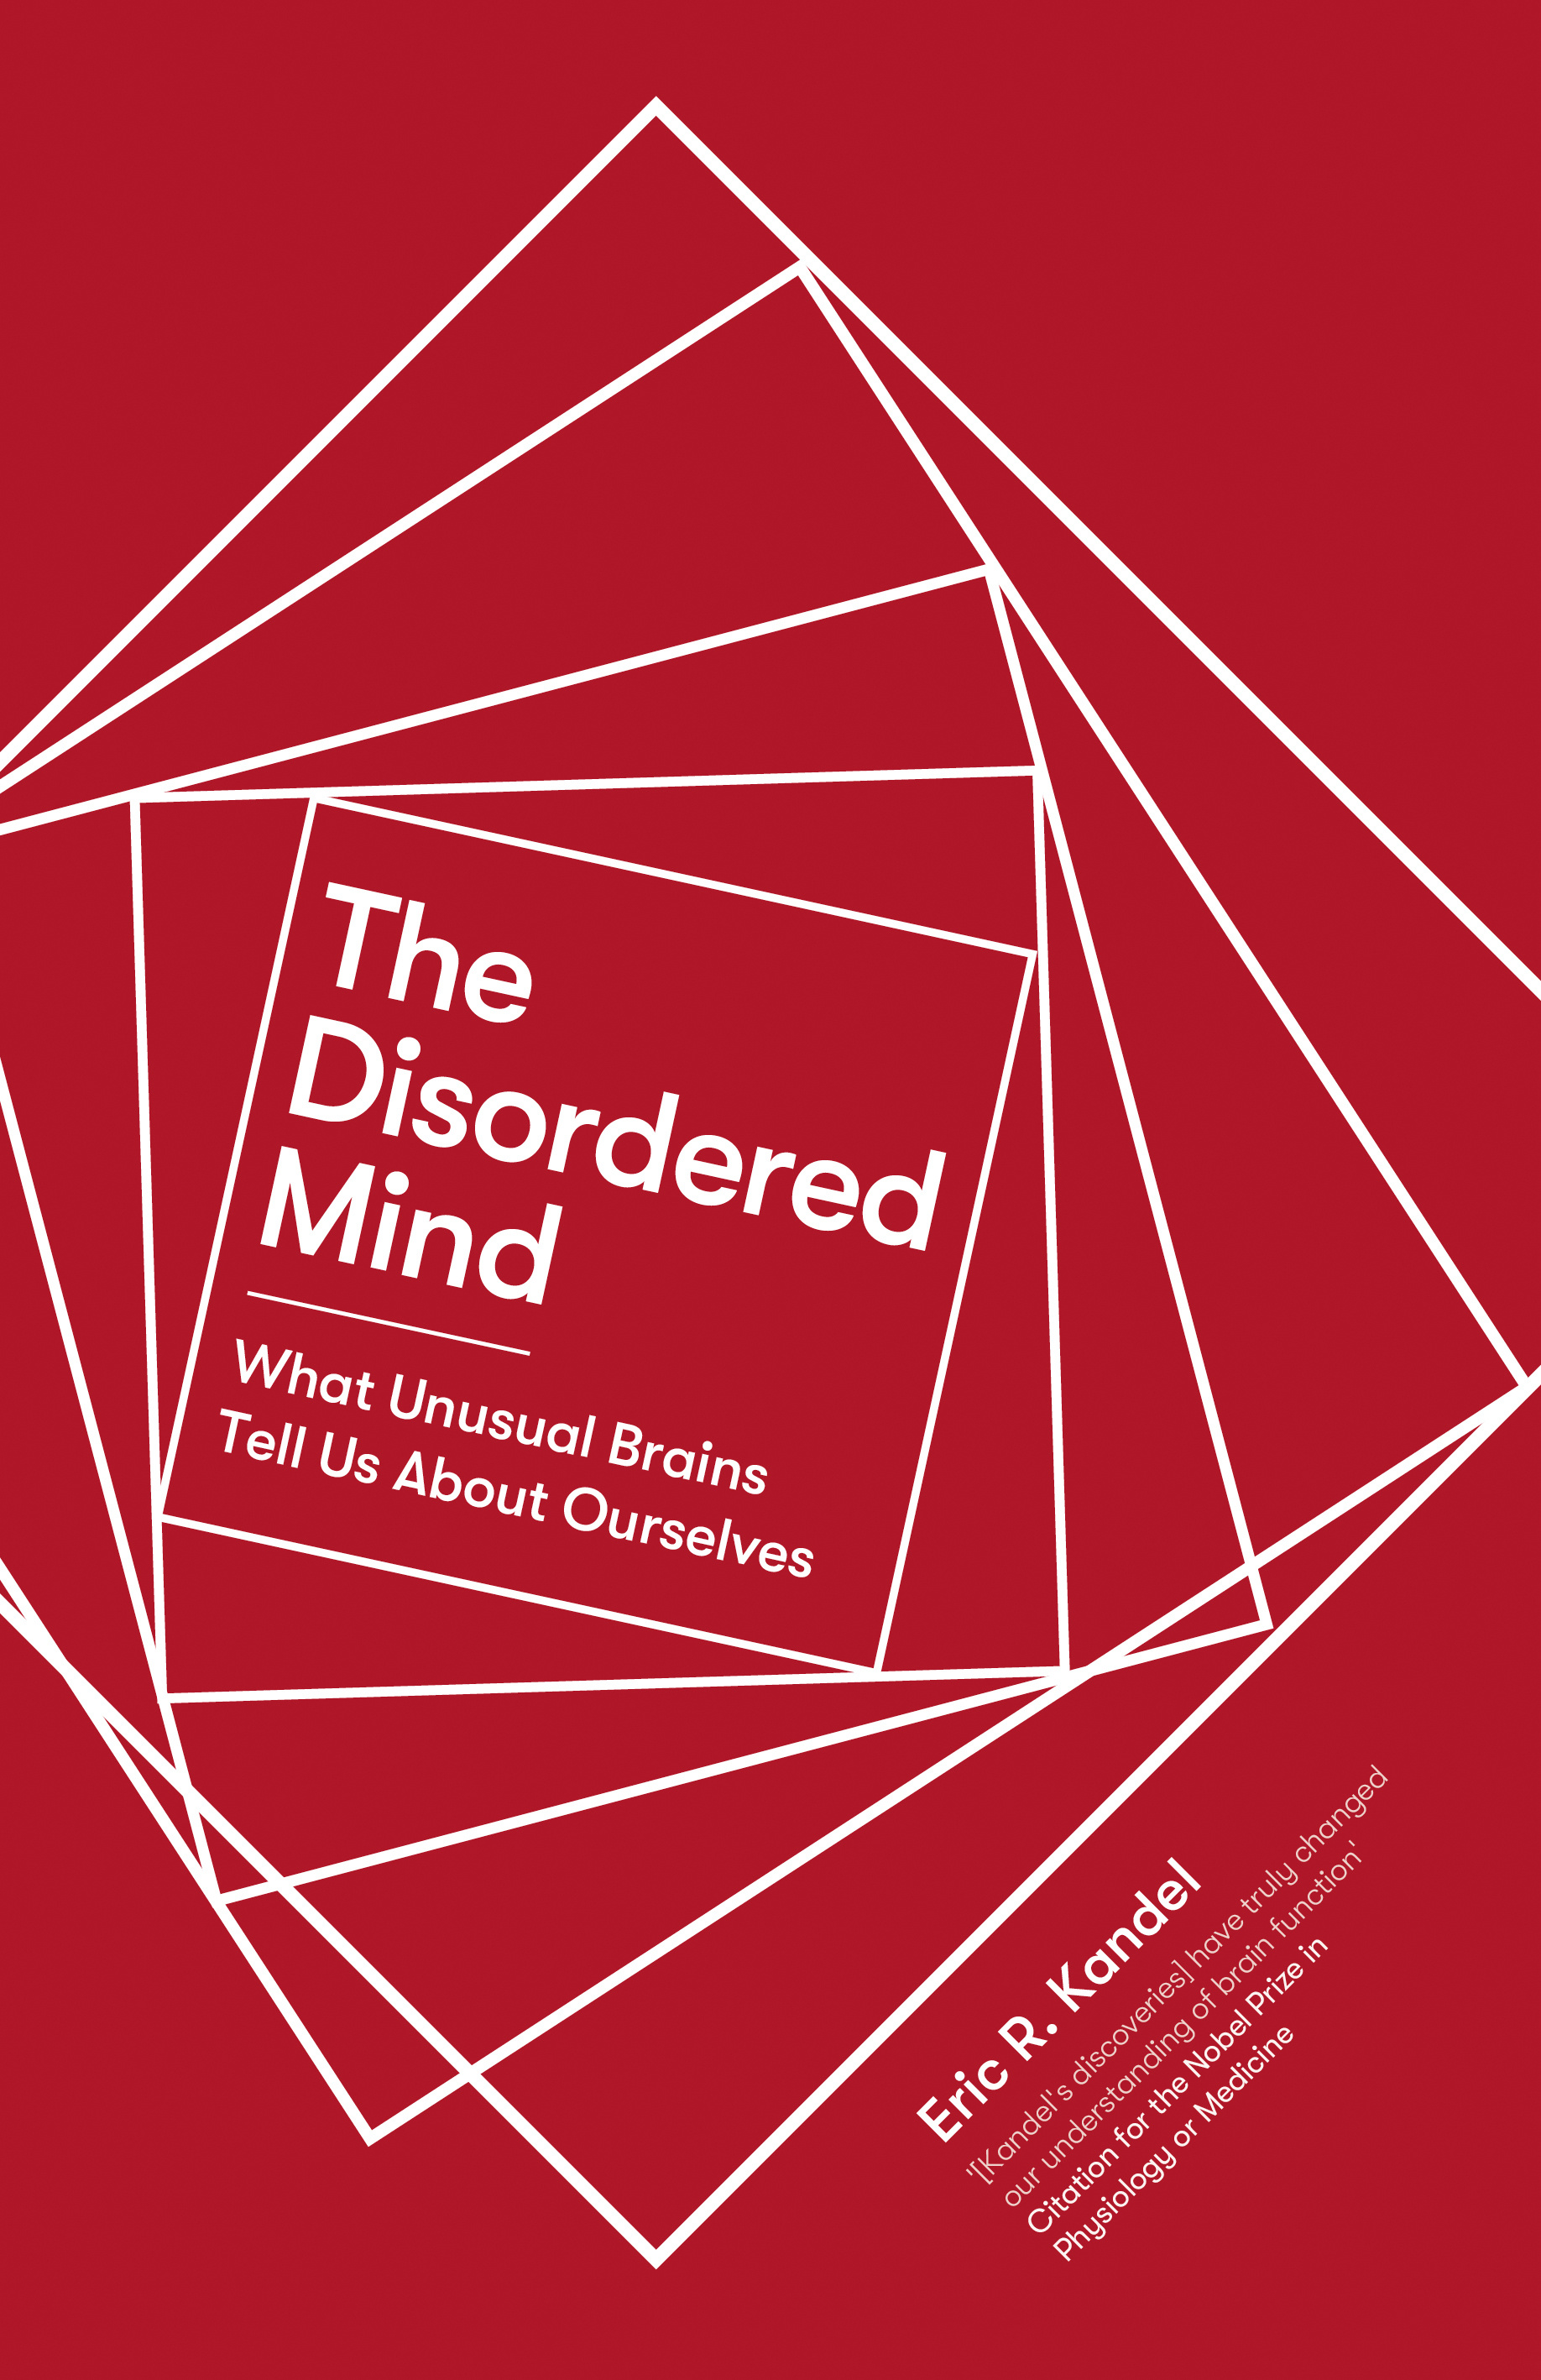 The Disordered MindWhat Unusual Brains Tell Us About Ourselves